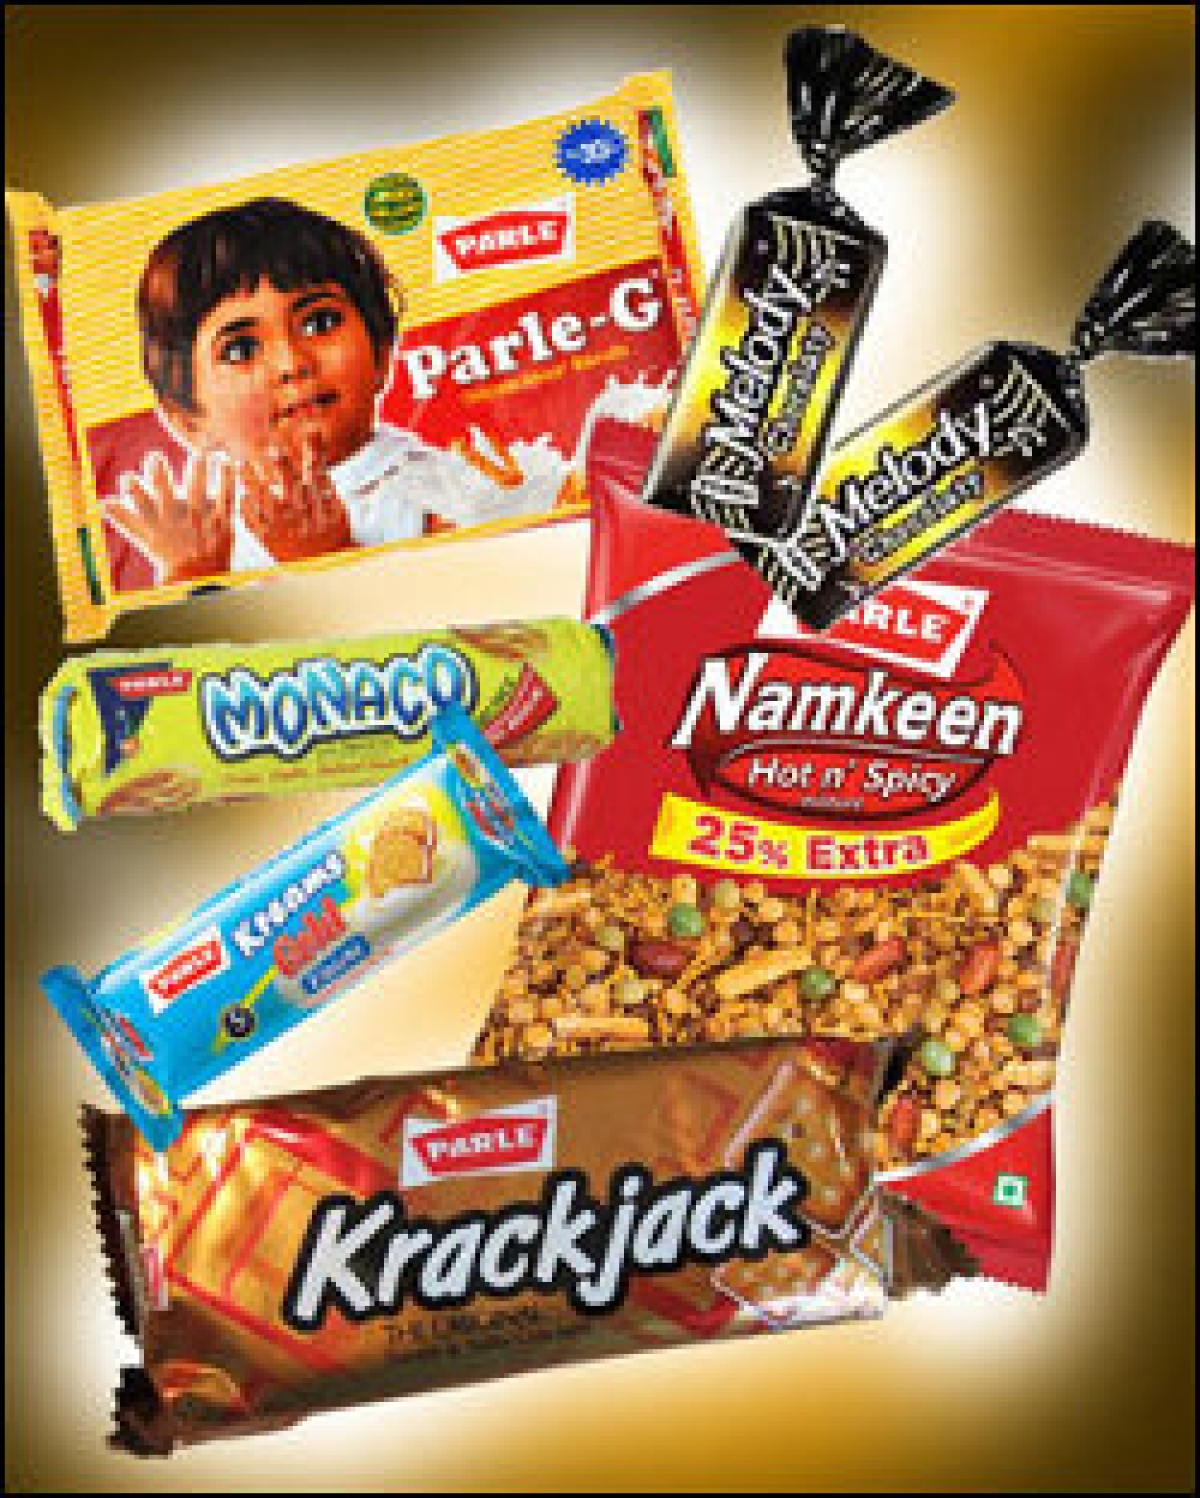 Updated: Parle goes off all TV channels